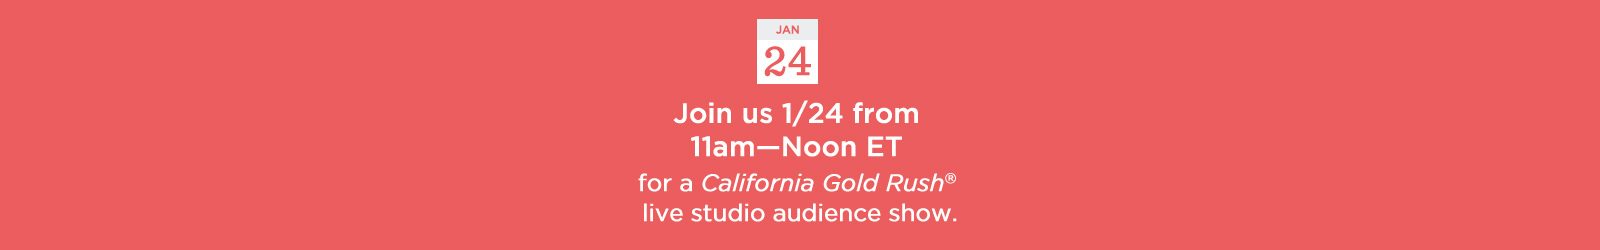 Join us 1/24 from 11am–Noon ET for a California Gold Rush® live studio audience show.